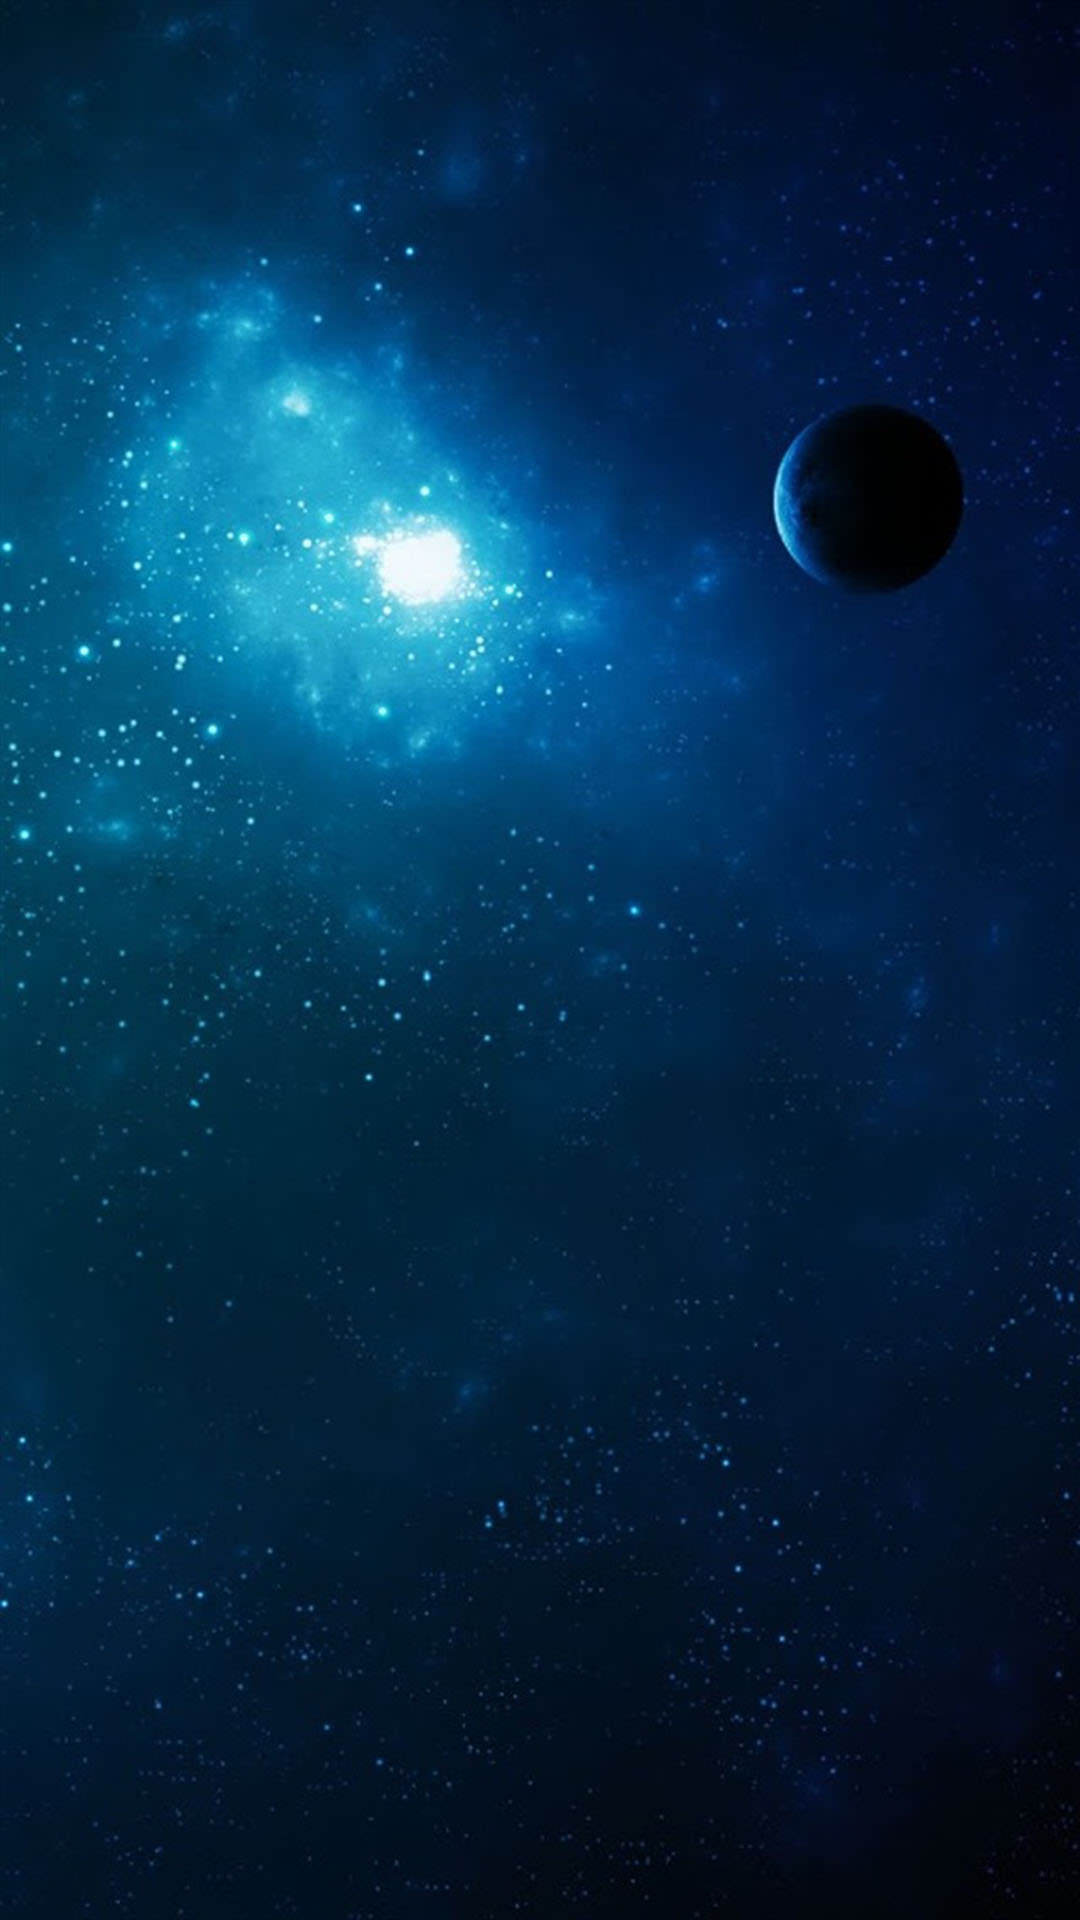 Space blue smartphone - Space wallpaper 2160x1920 ...